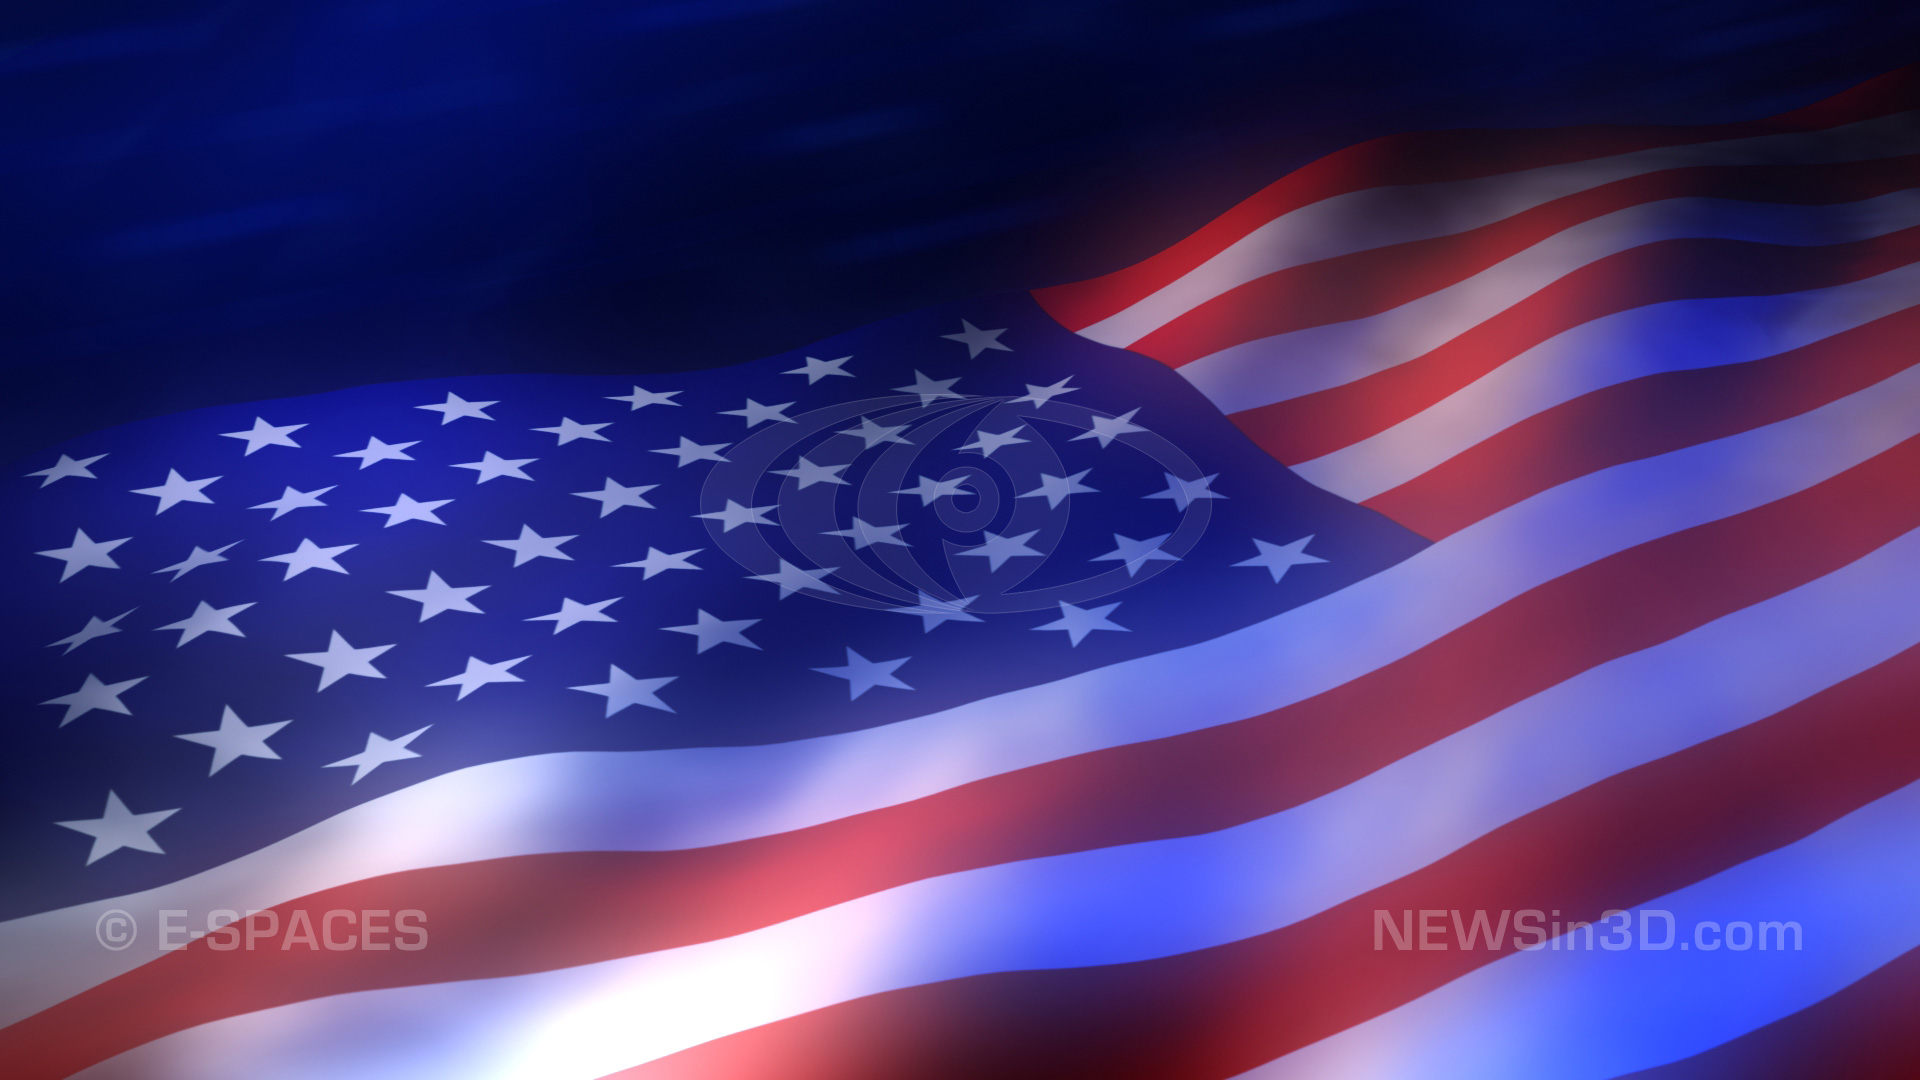 US flag background HDTV preview still